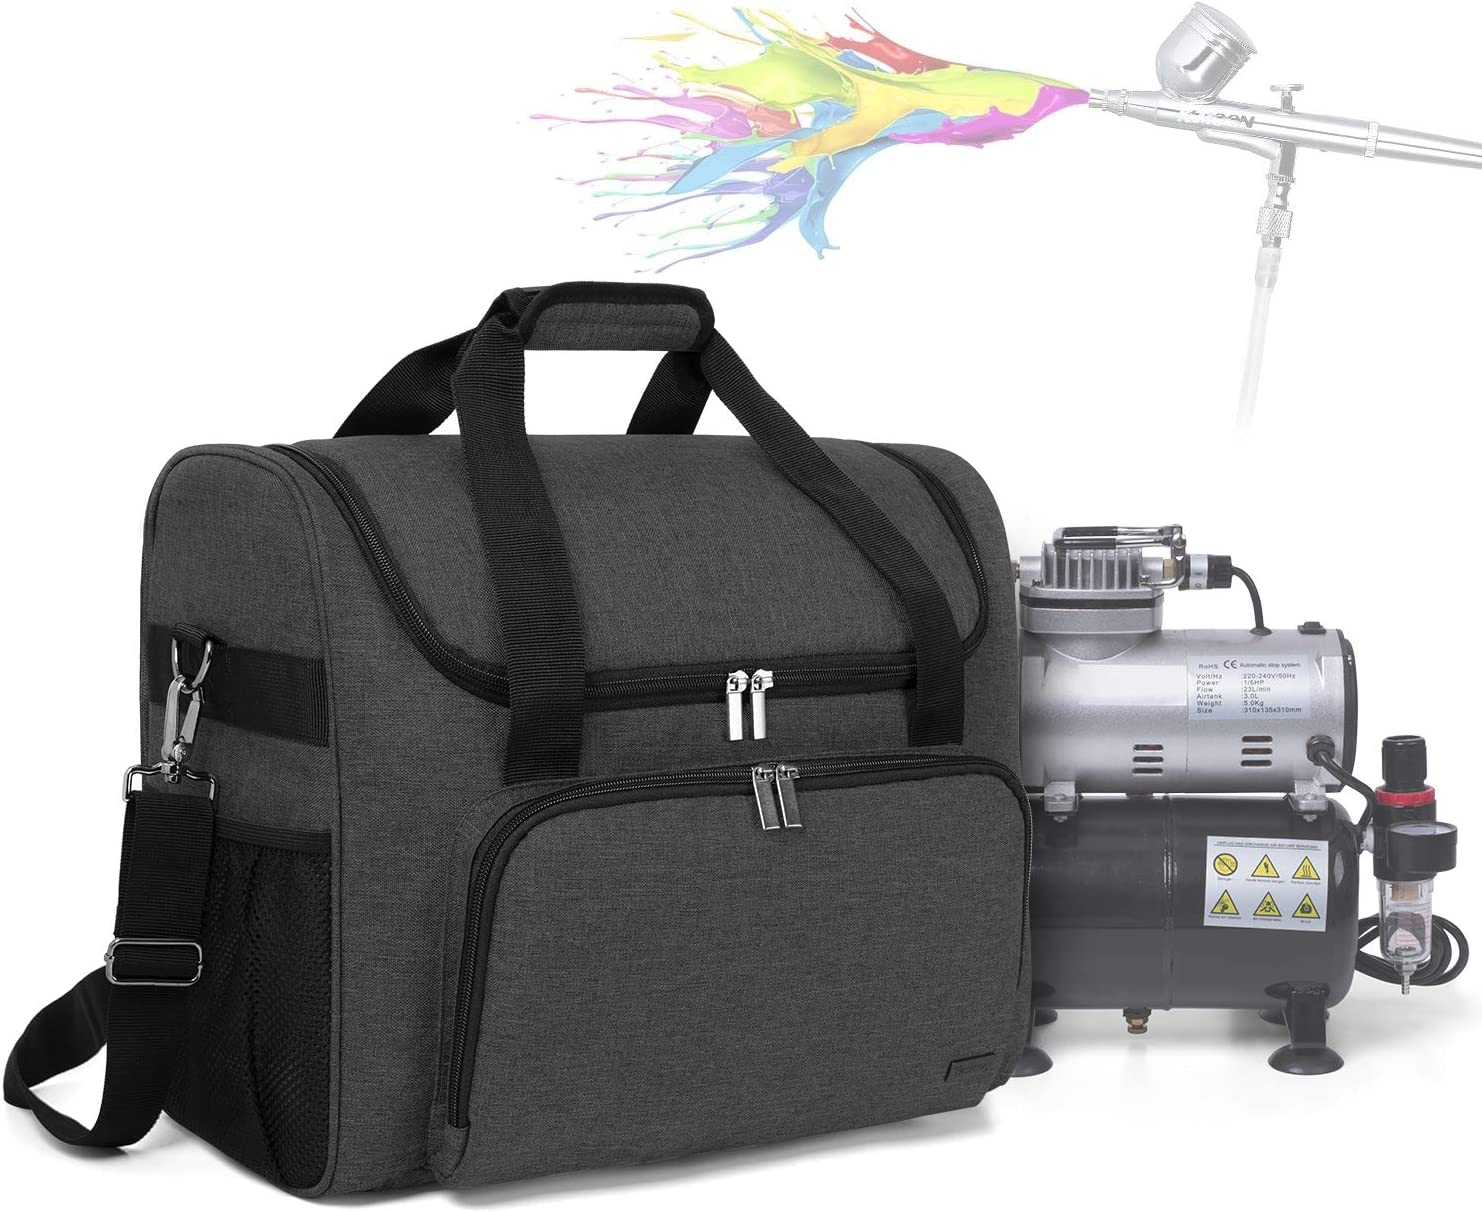 Teamoy Airbrushing Paint System for Organizer Bag 5 ☆ very popular Carrying New popularity